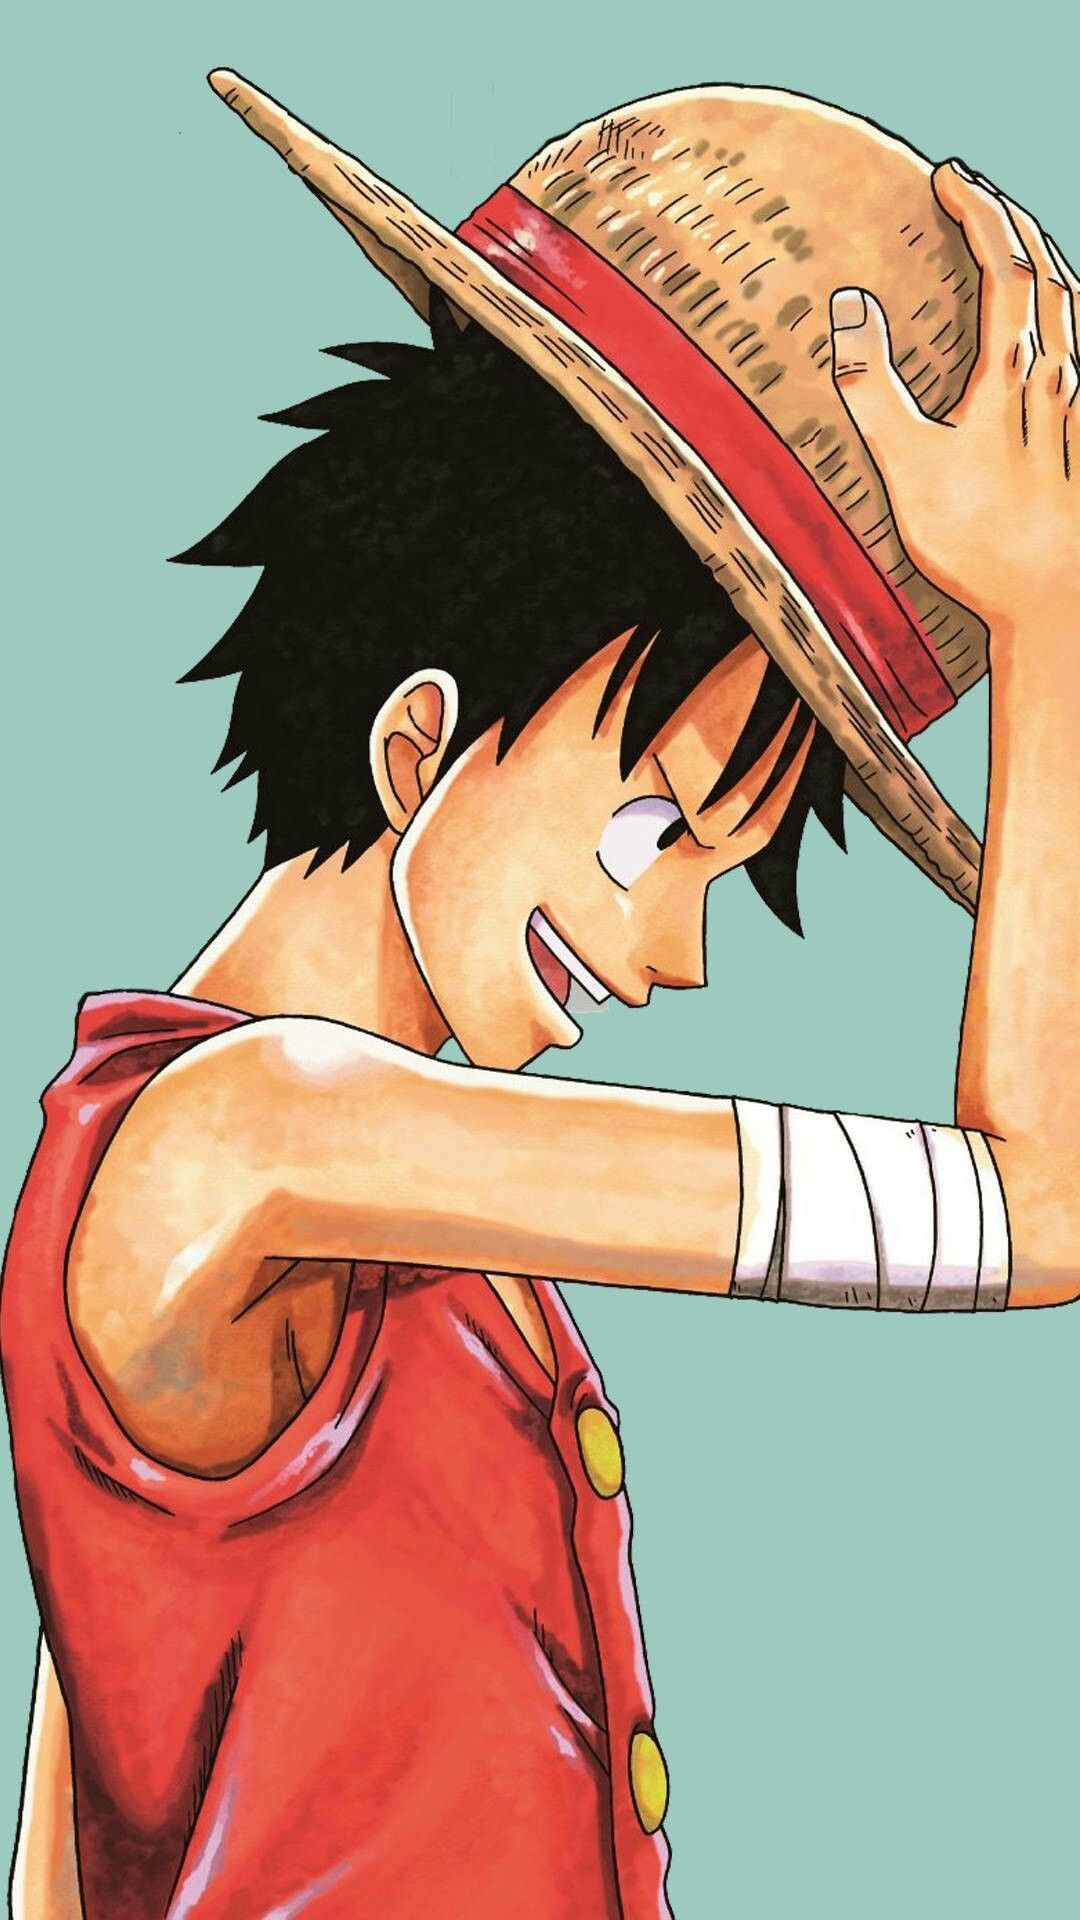 One Piece Luffy Iphone Wallpapers Top Free One Piece Luffy Iphone Backgrounds Wallpaperaccess